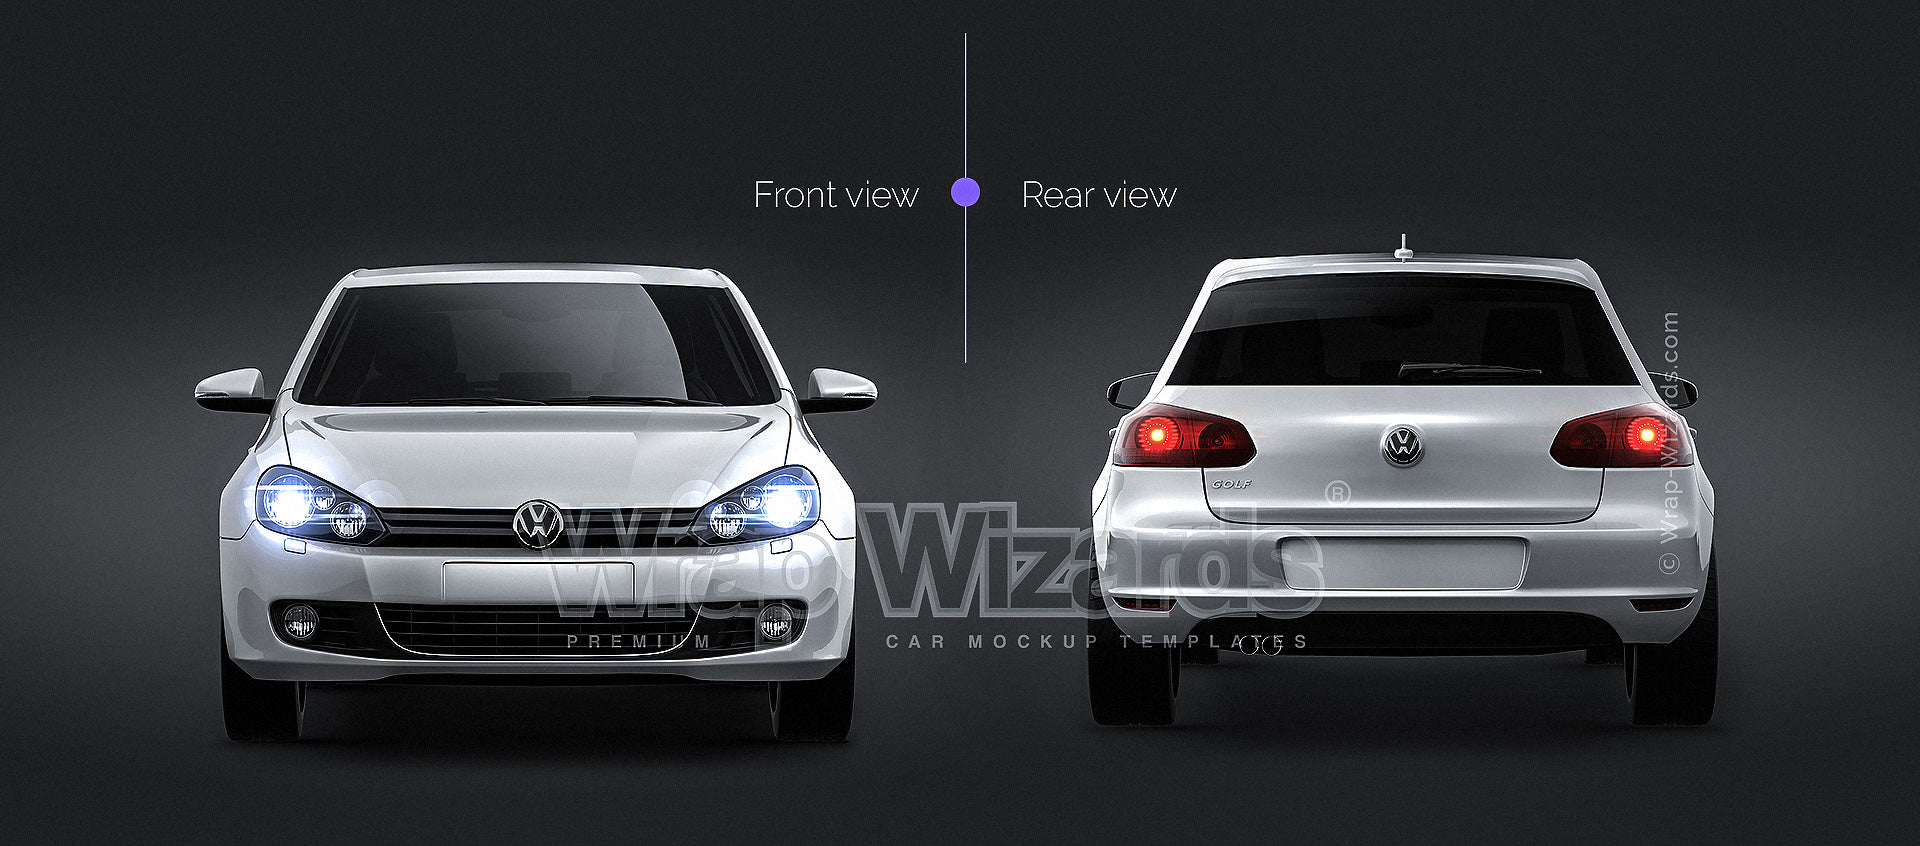 Volkswagen Golf MK6 5-doors - all sides Car Mockup Template.psd